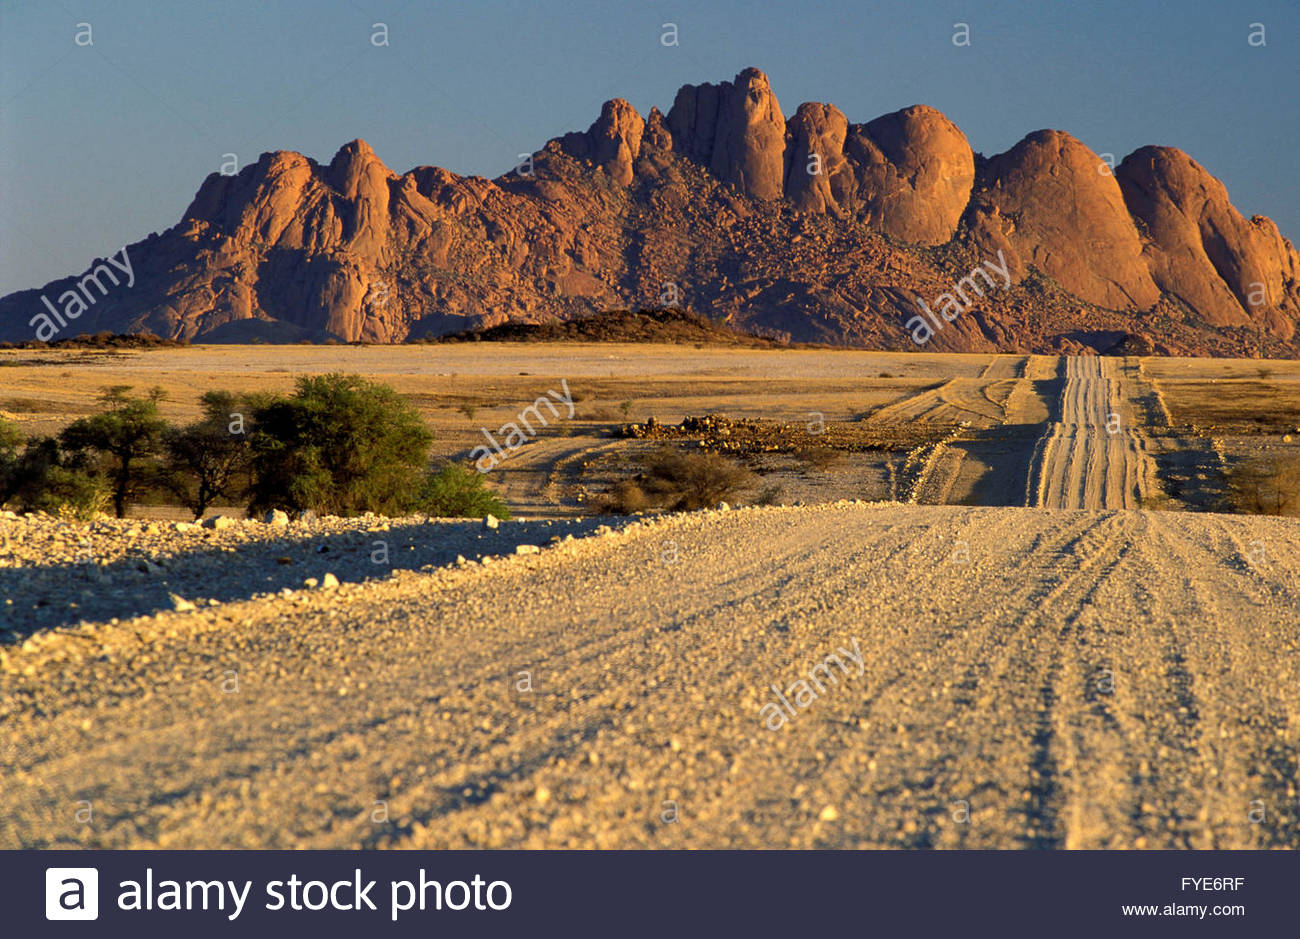 Rock formations in Spitzkoppe Namibia - Stock Image